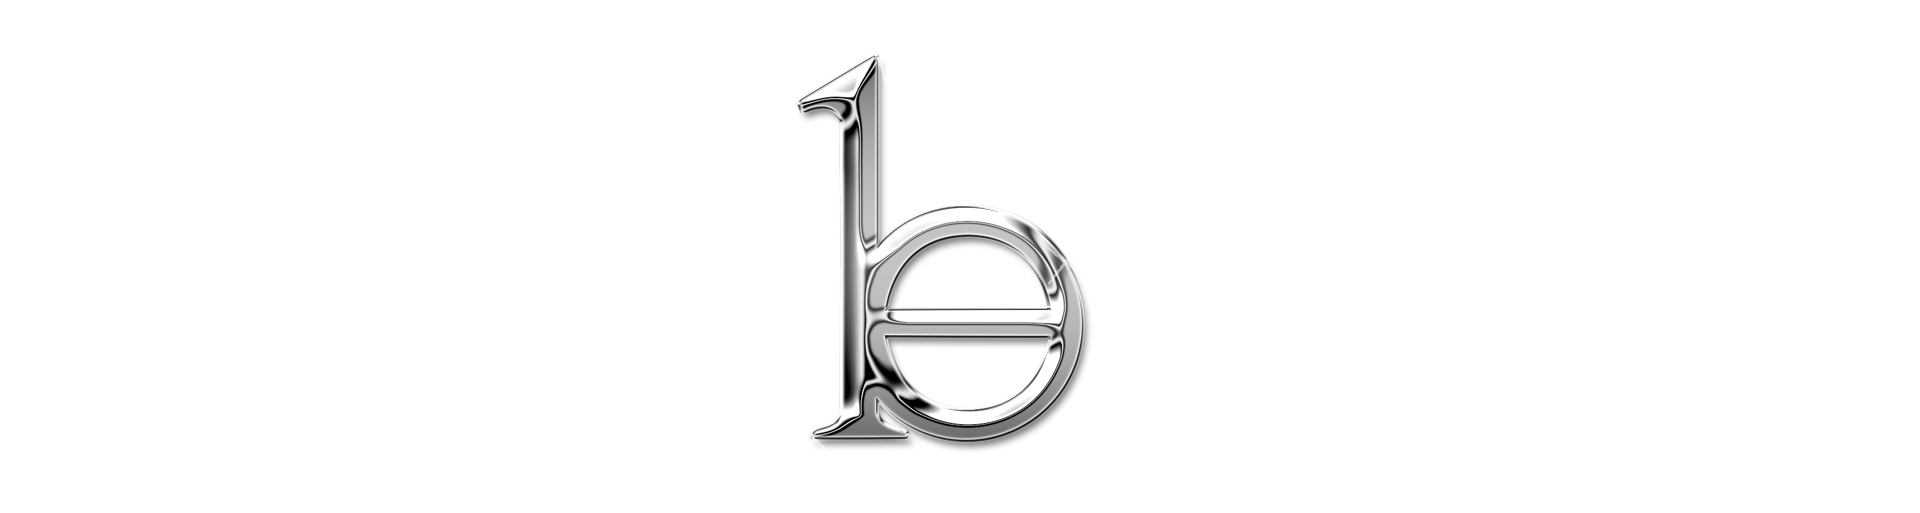 Be1Creations-Be1 Creations-chrome-logo